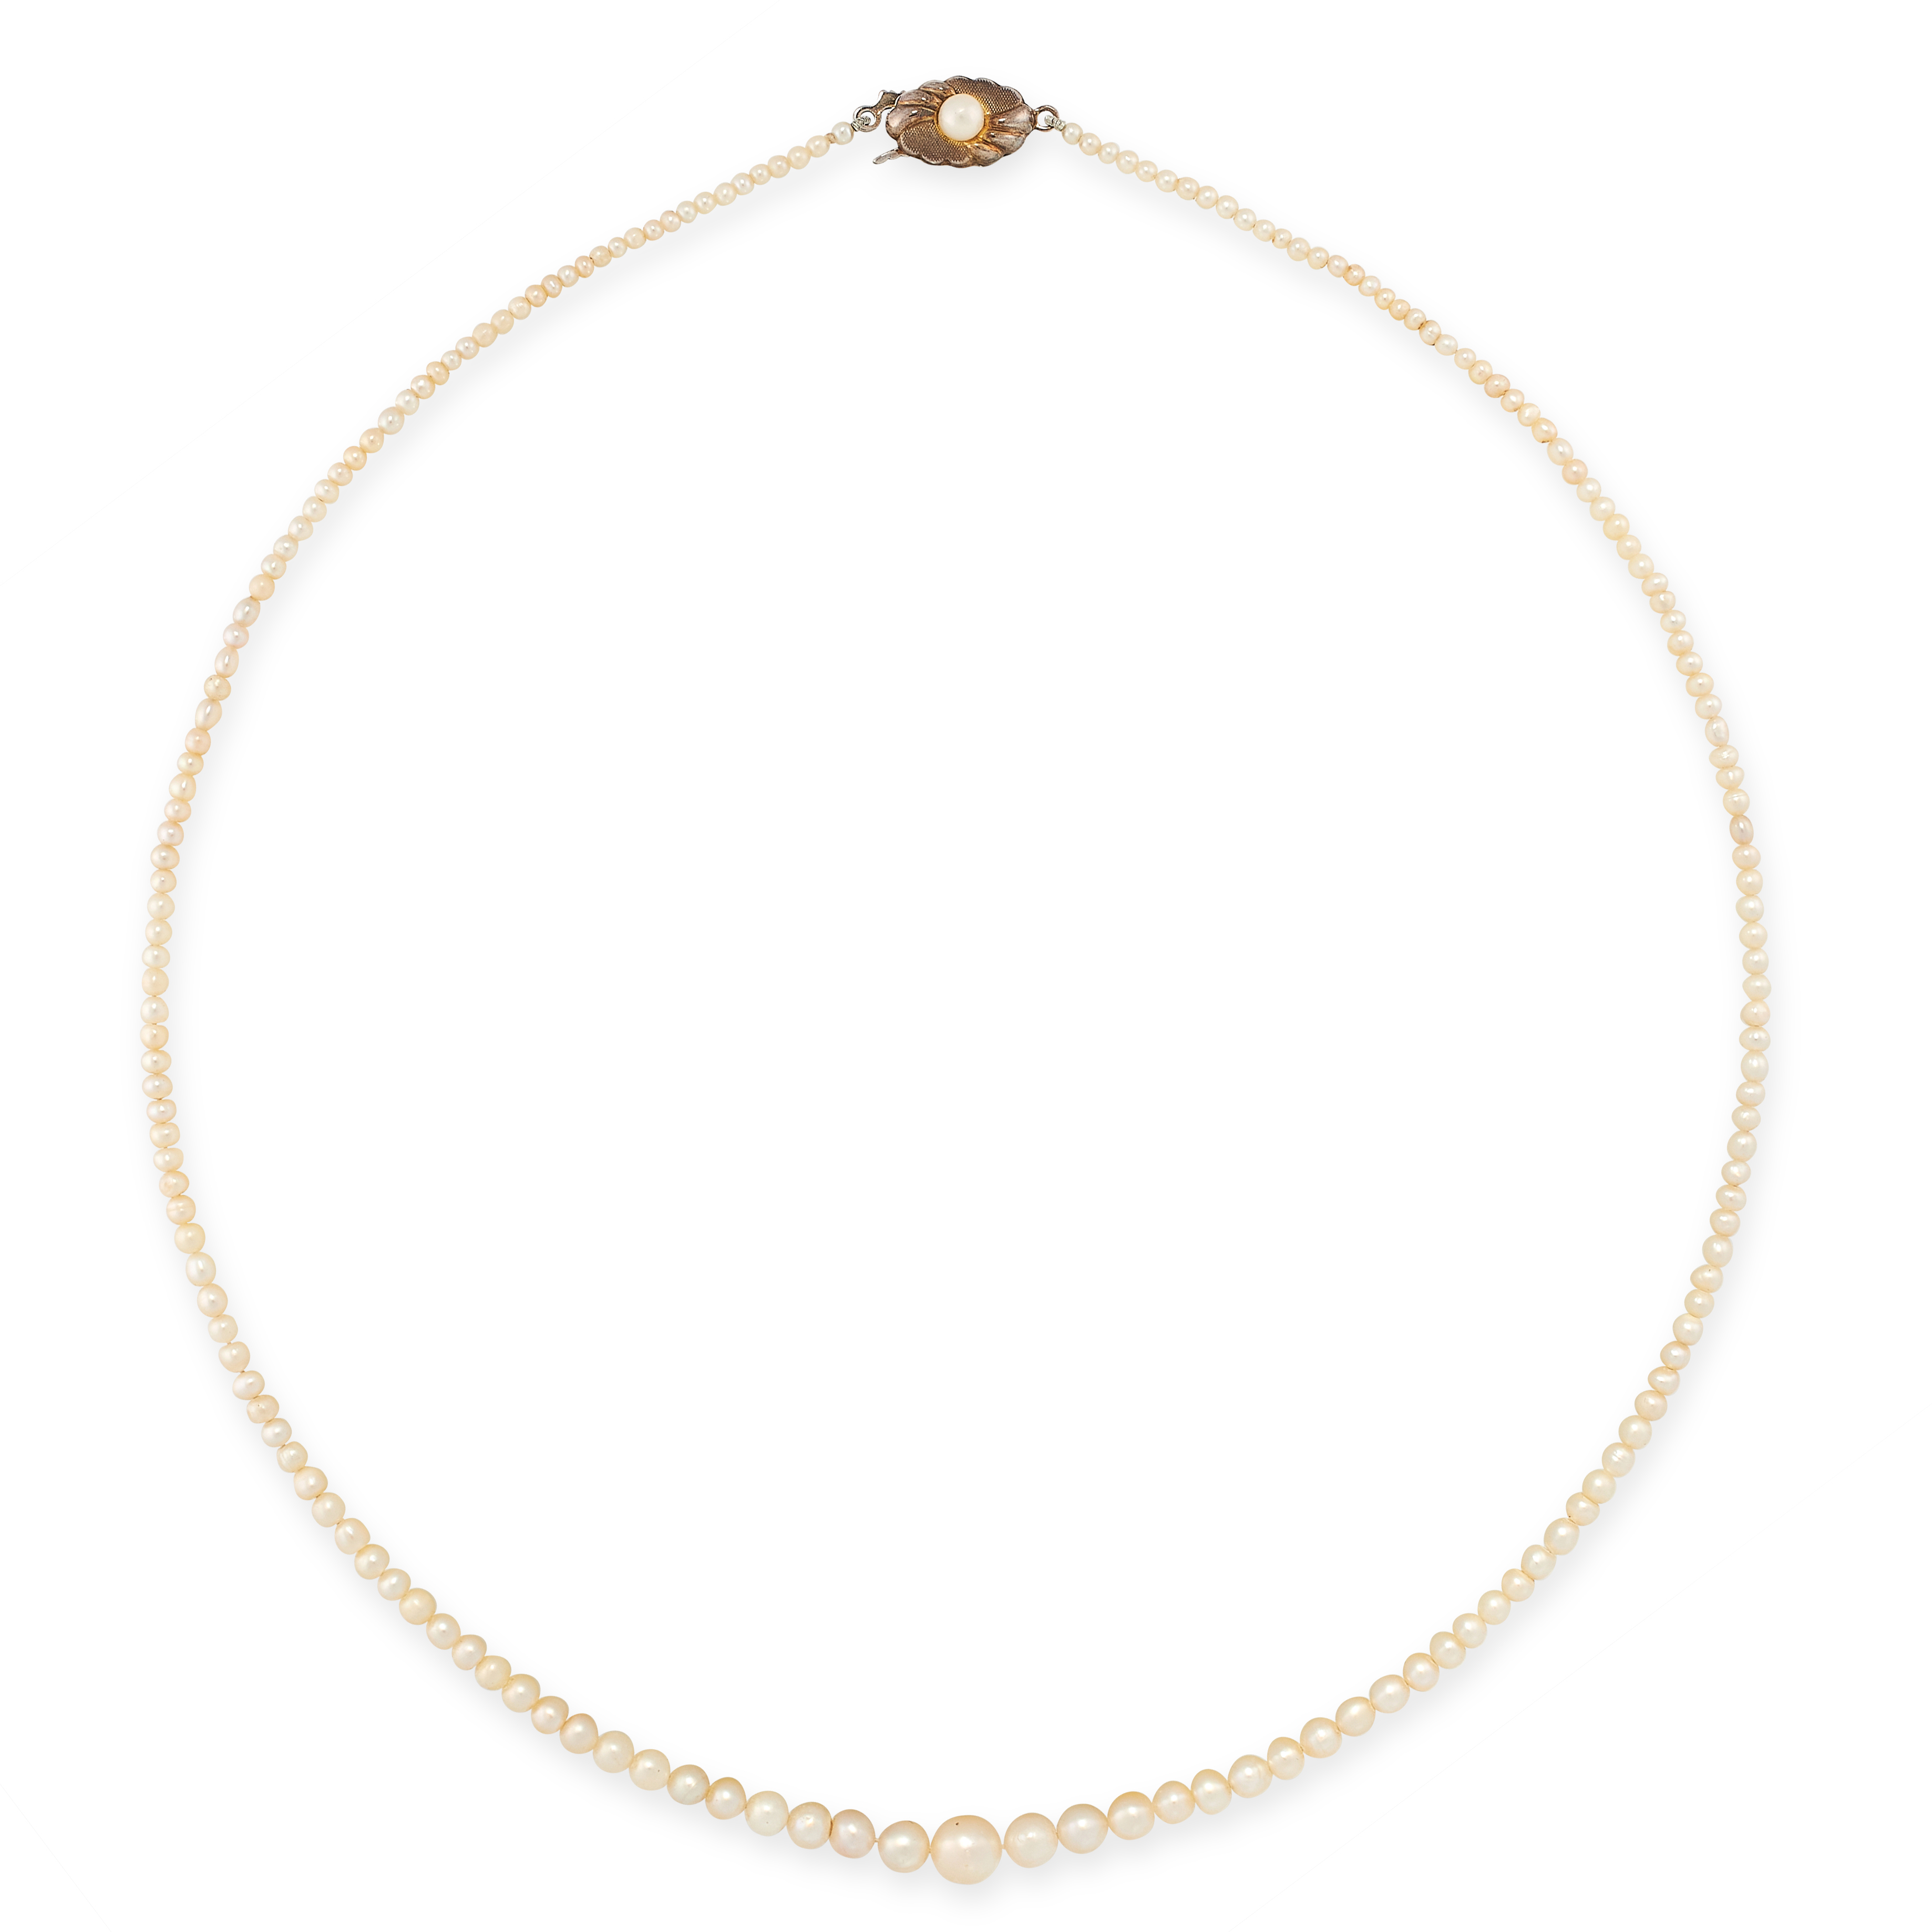 THREE NATURAL PEARL NECKLACES each comprising of a single row of natural pearls ranging from 1.4mm-